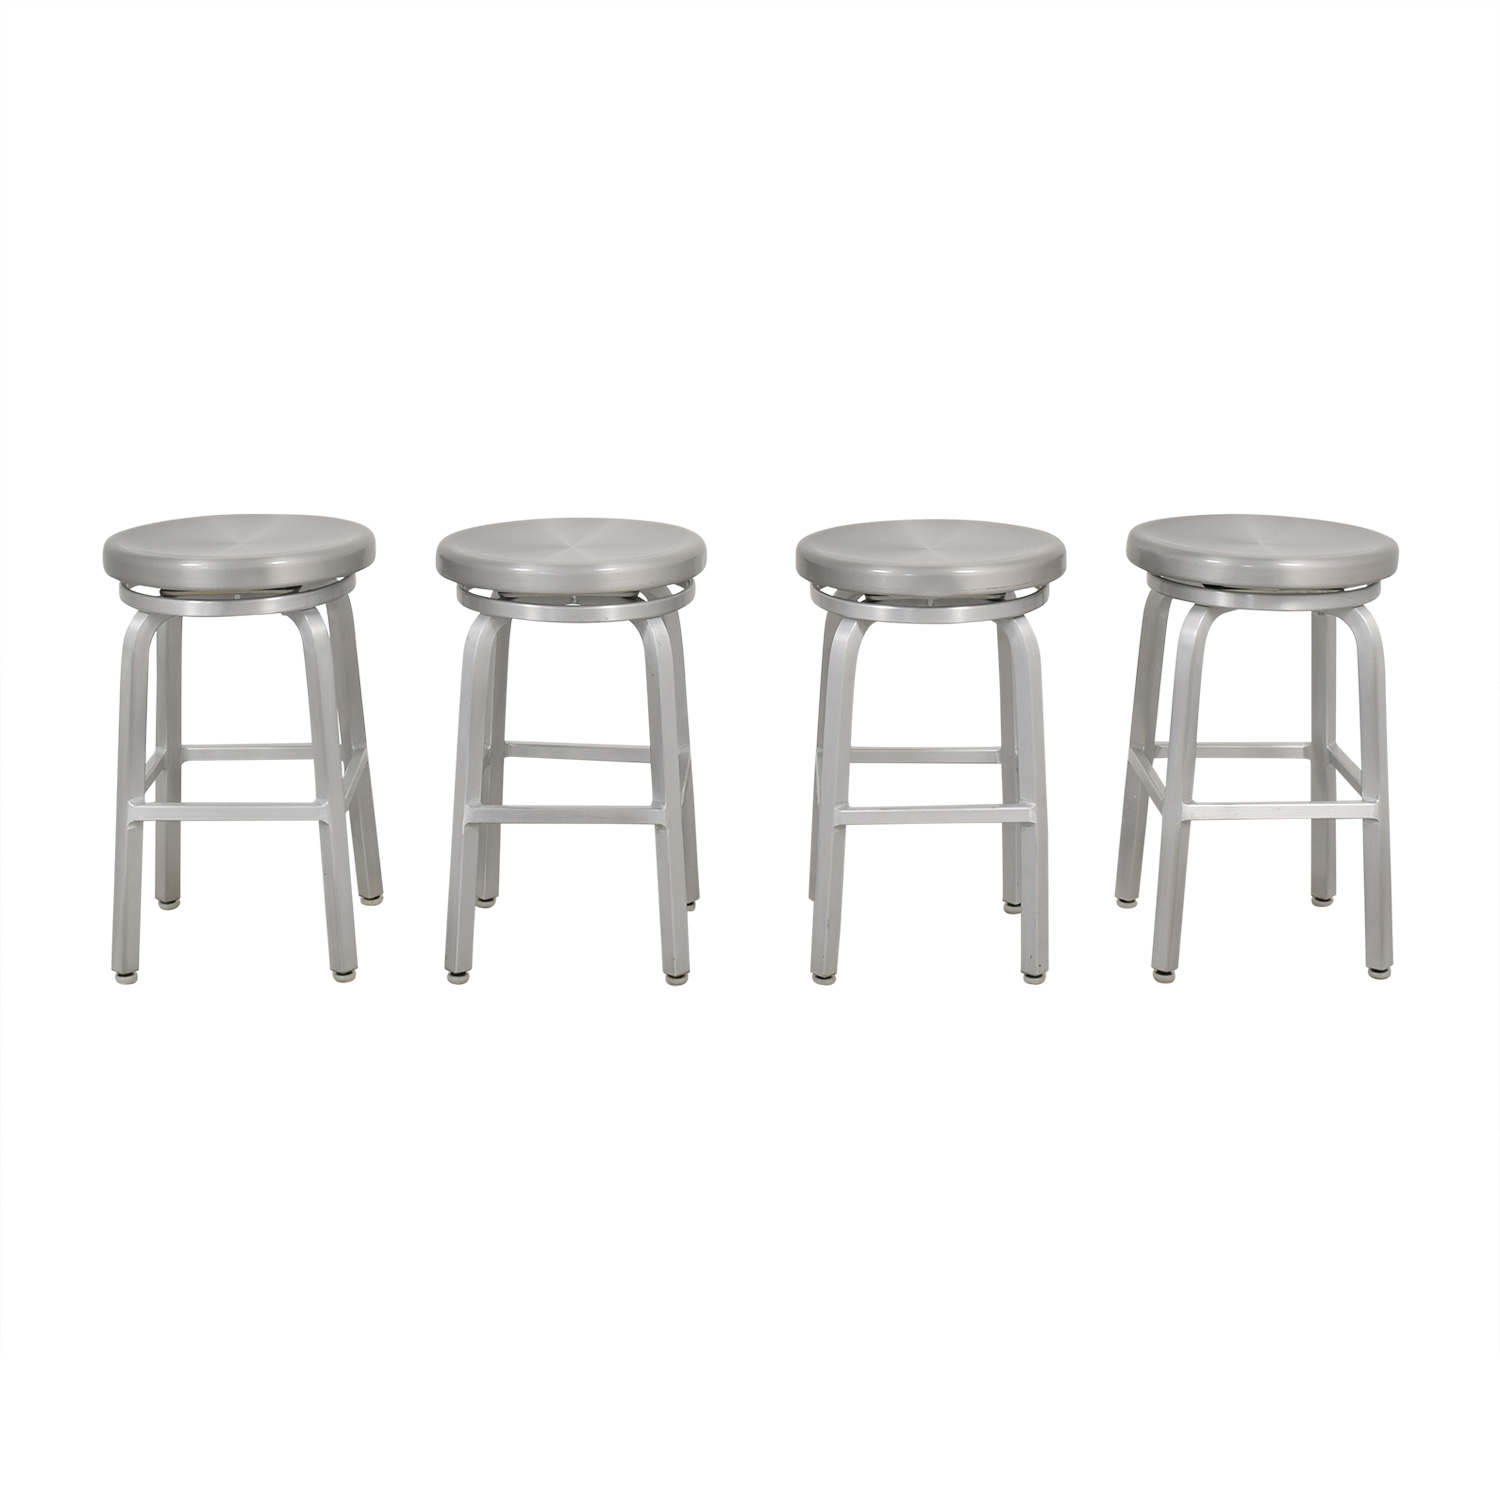 Remarkable 26 Off Crate Barrel Crate Barrel Spin Swivel Backless Counter Stool Chairs Pabps2019 Chair Design Images Pabps2019Com